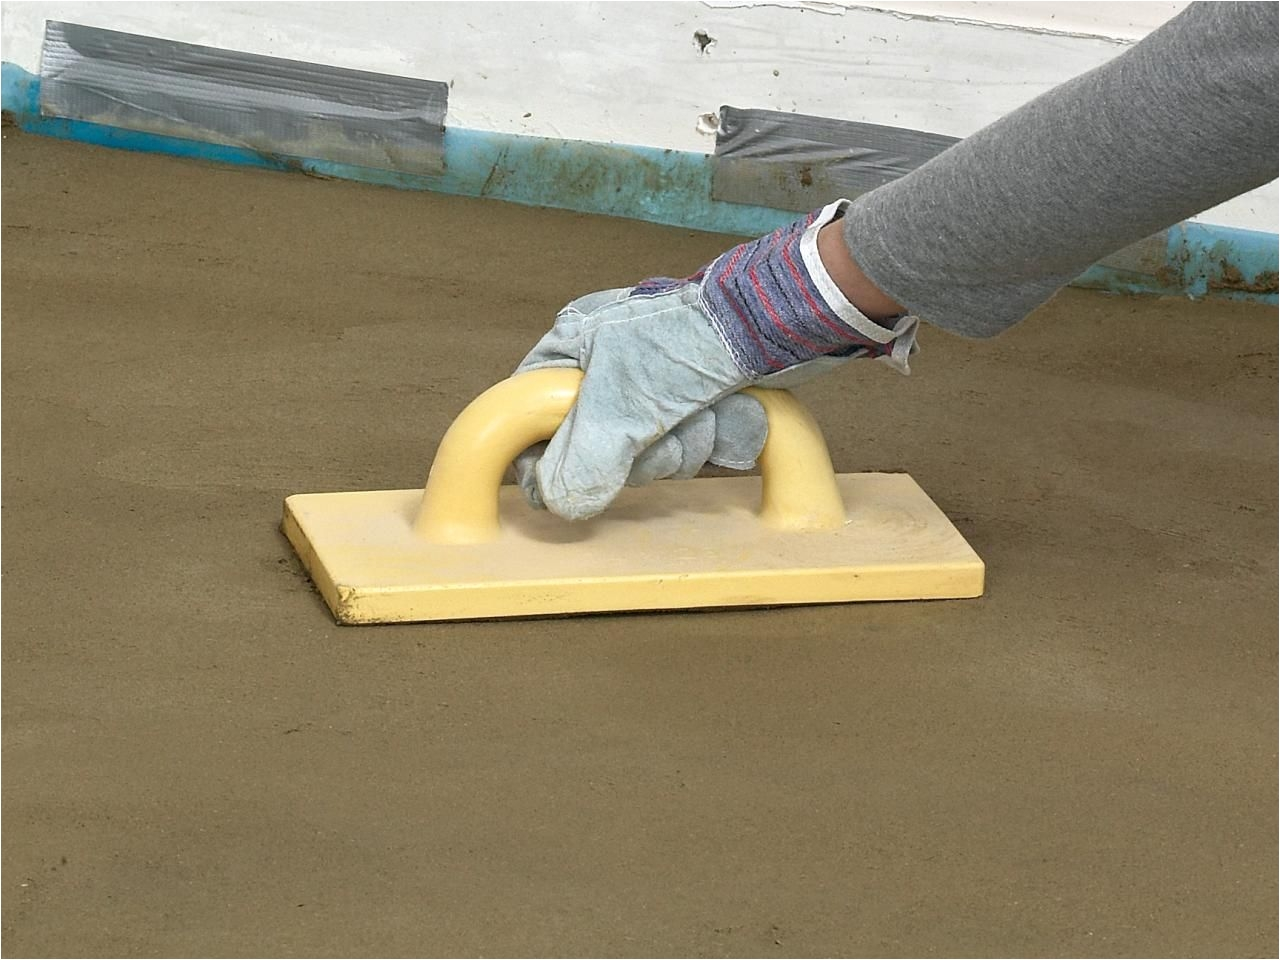 Diy Heated Garage Floor How to Pour A Concrete Floor Concrete Floor Concrete and Dorm